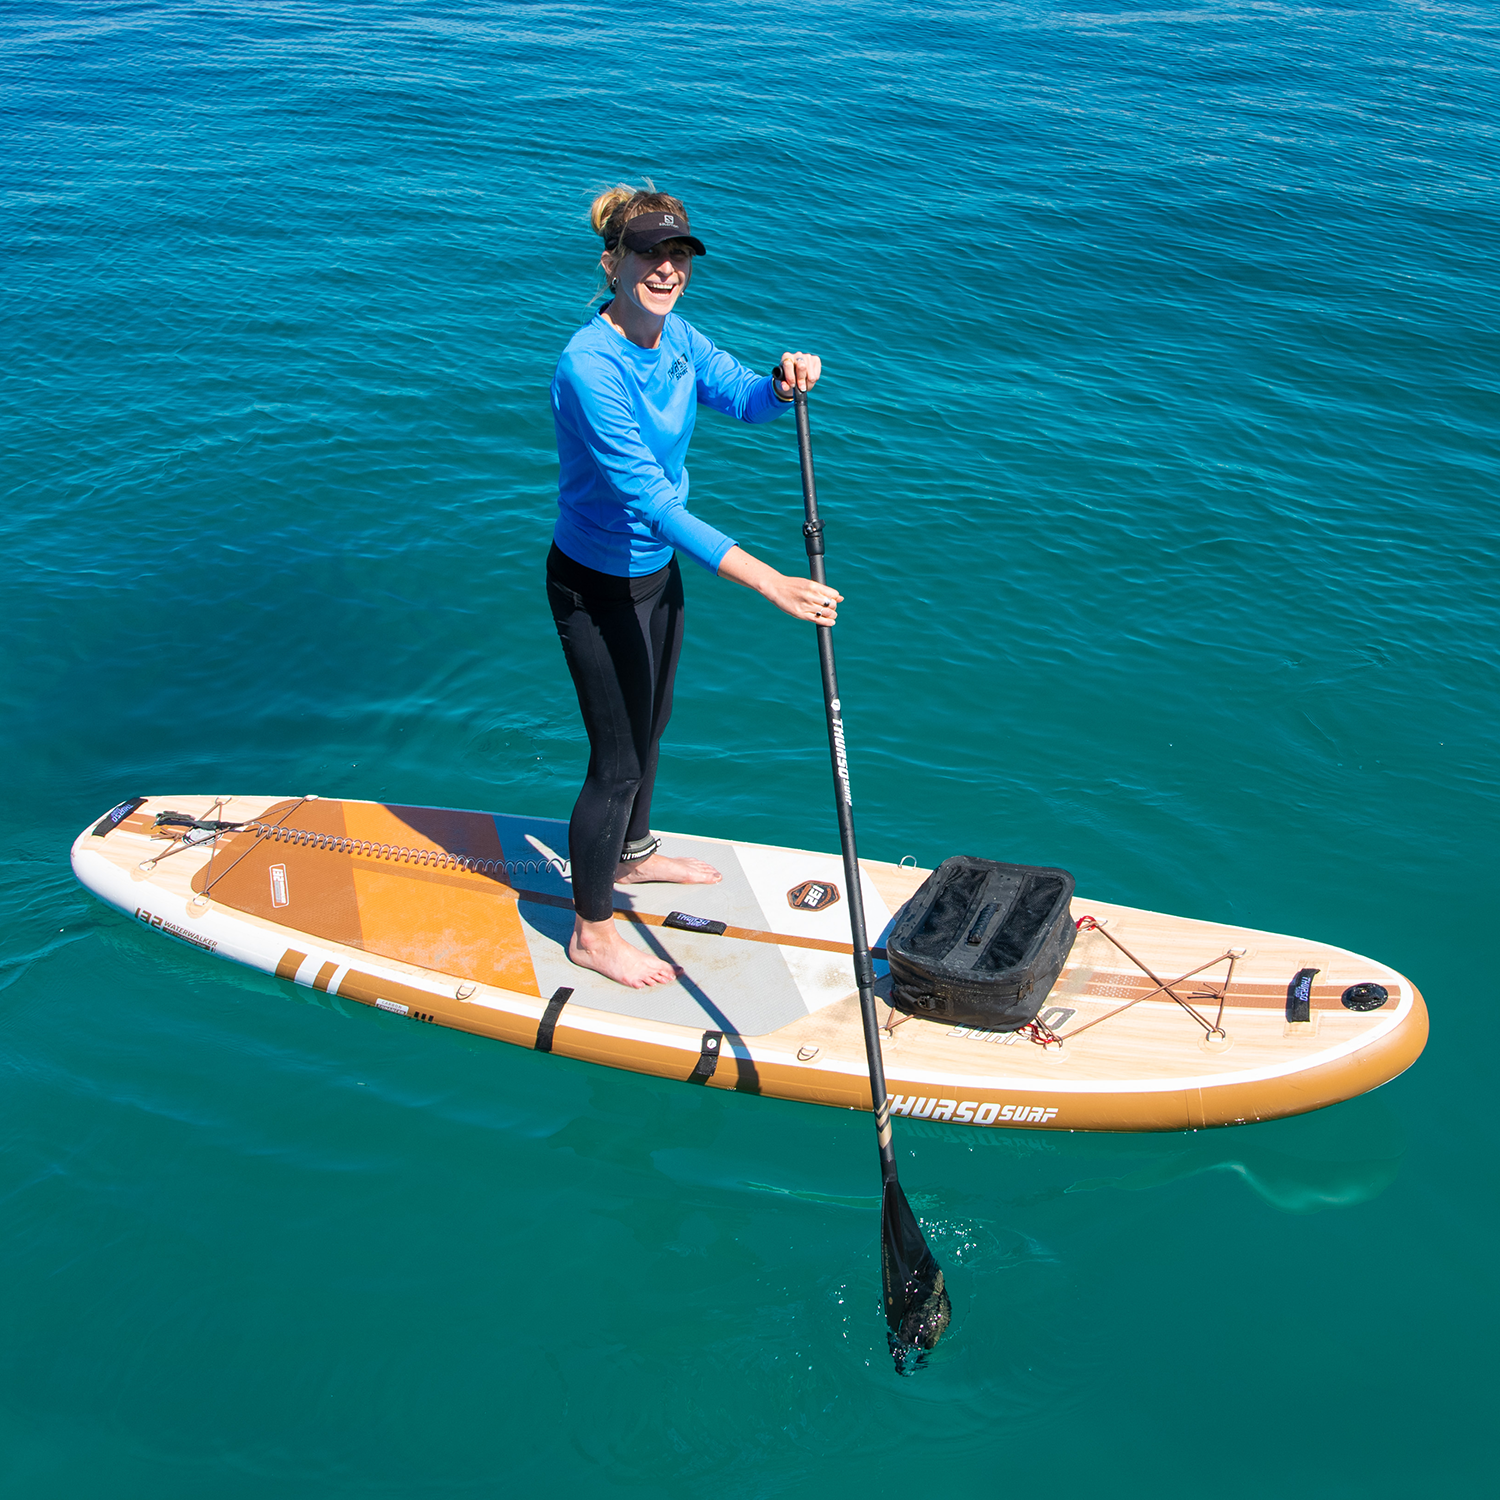 THURSO-SURF-inflatable-stand-up-paddle-board-all-around-sup-waterwalker-132_6